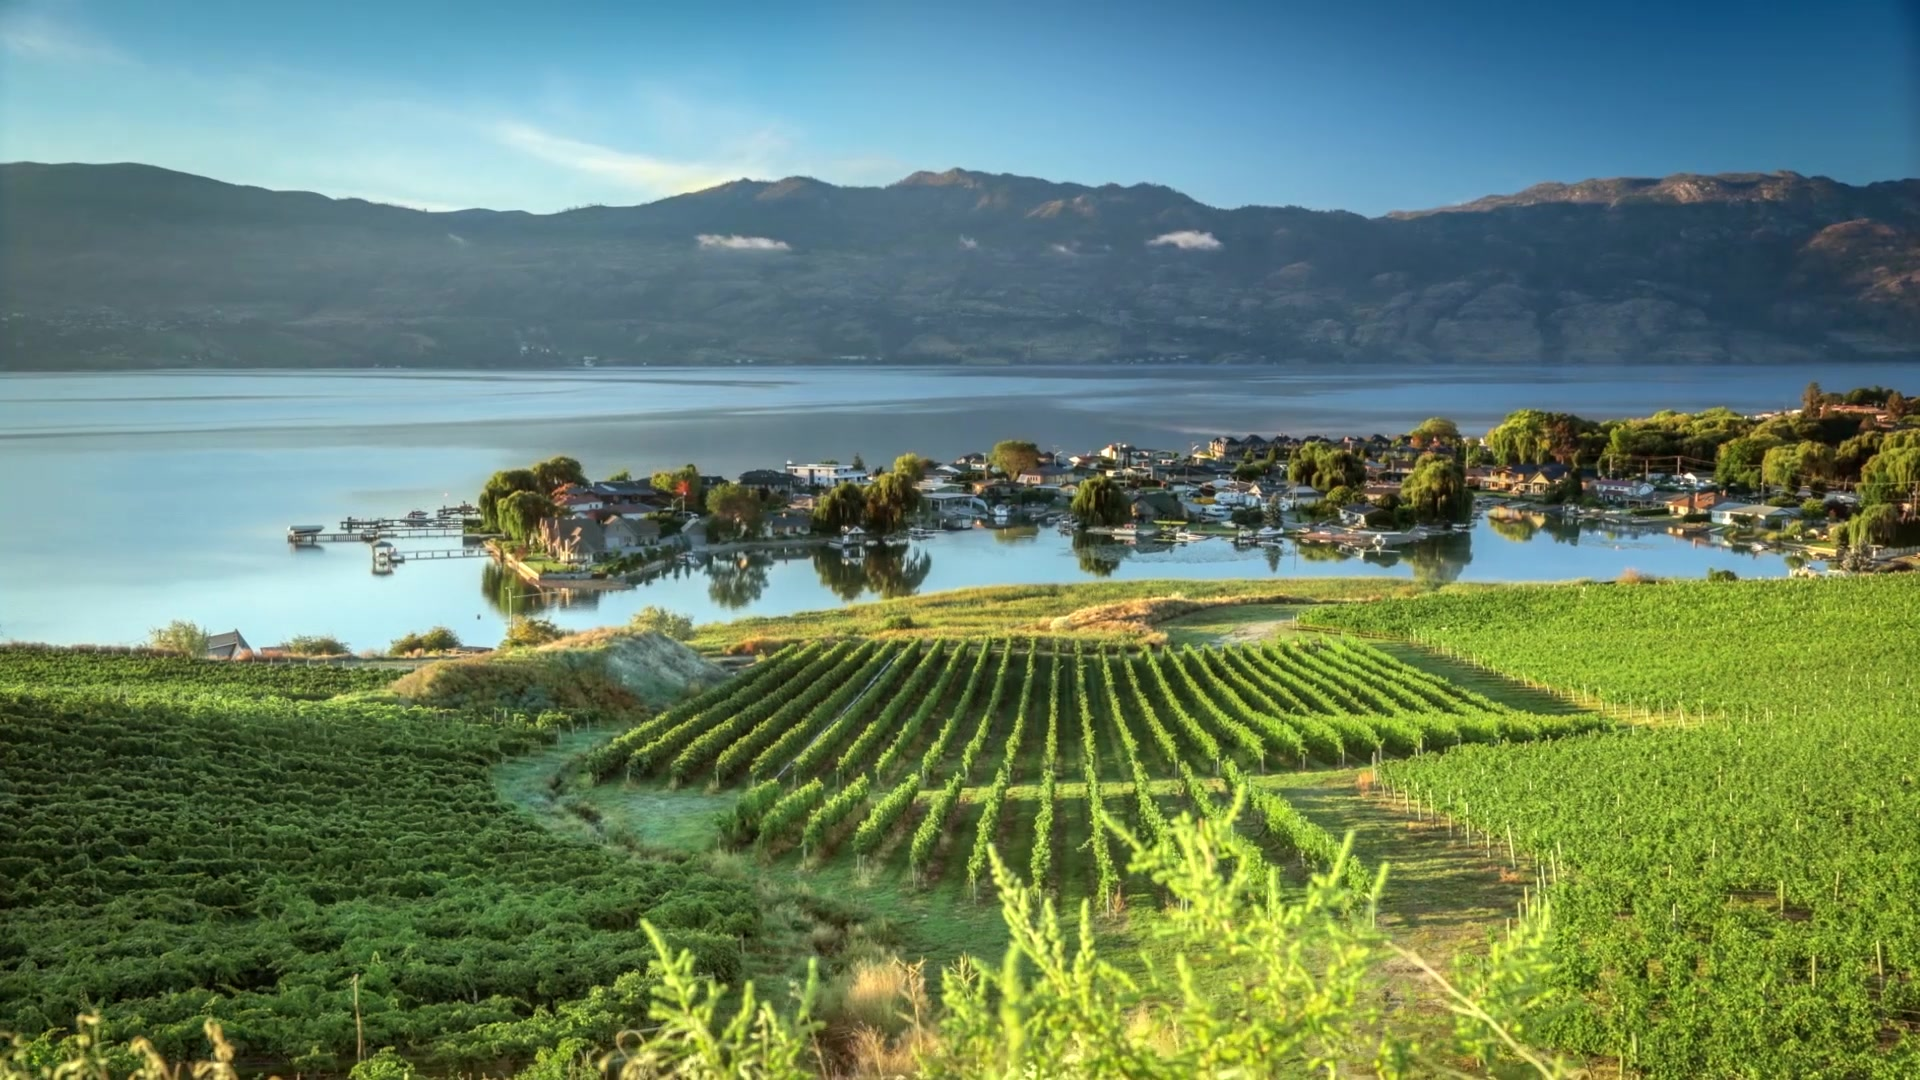 Kelowna 2019: Best of Kelowna, British Columbia Tourism